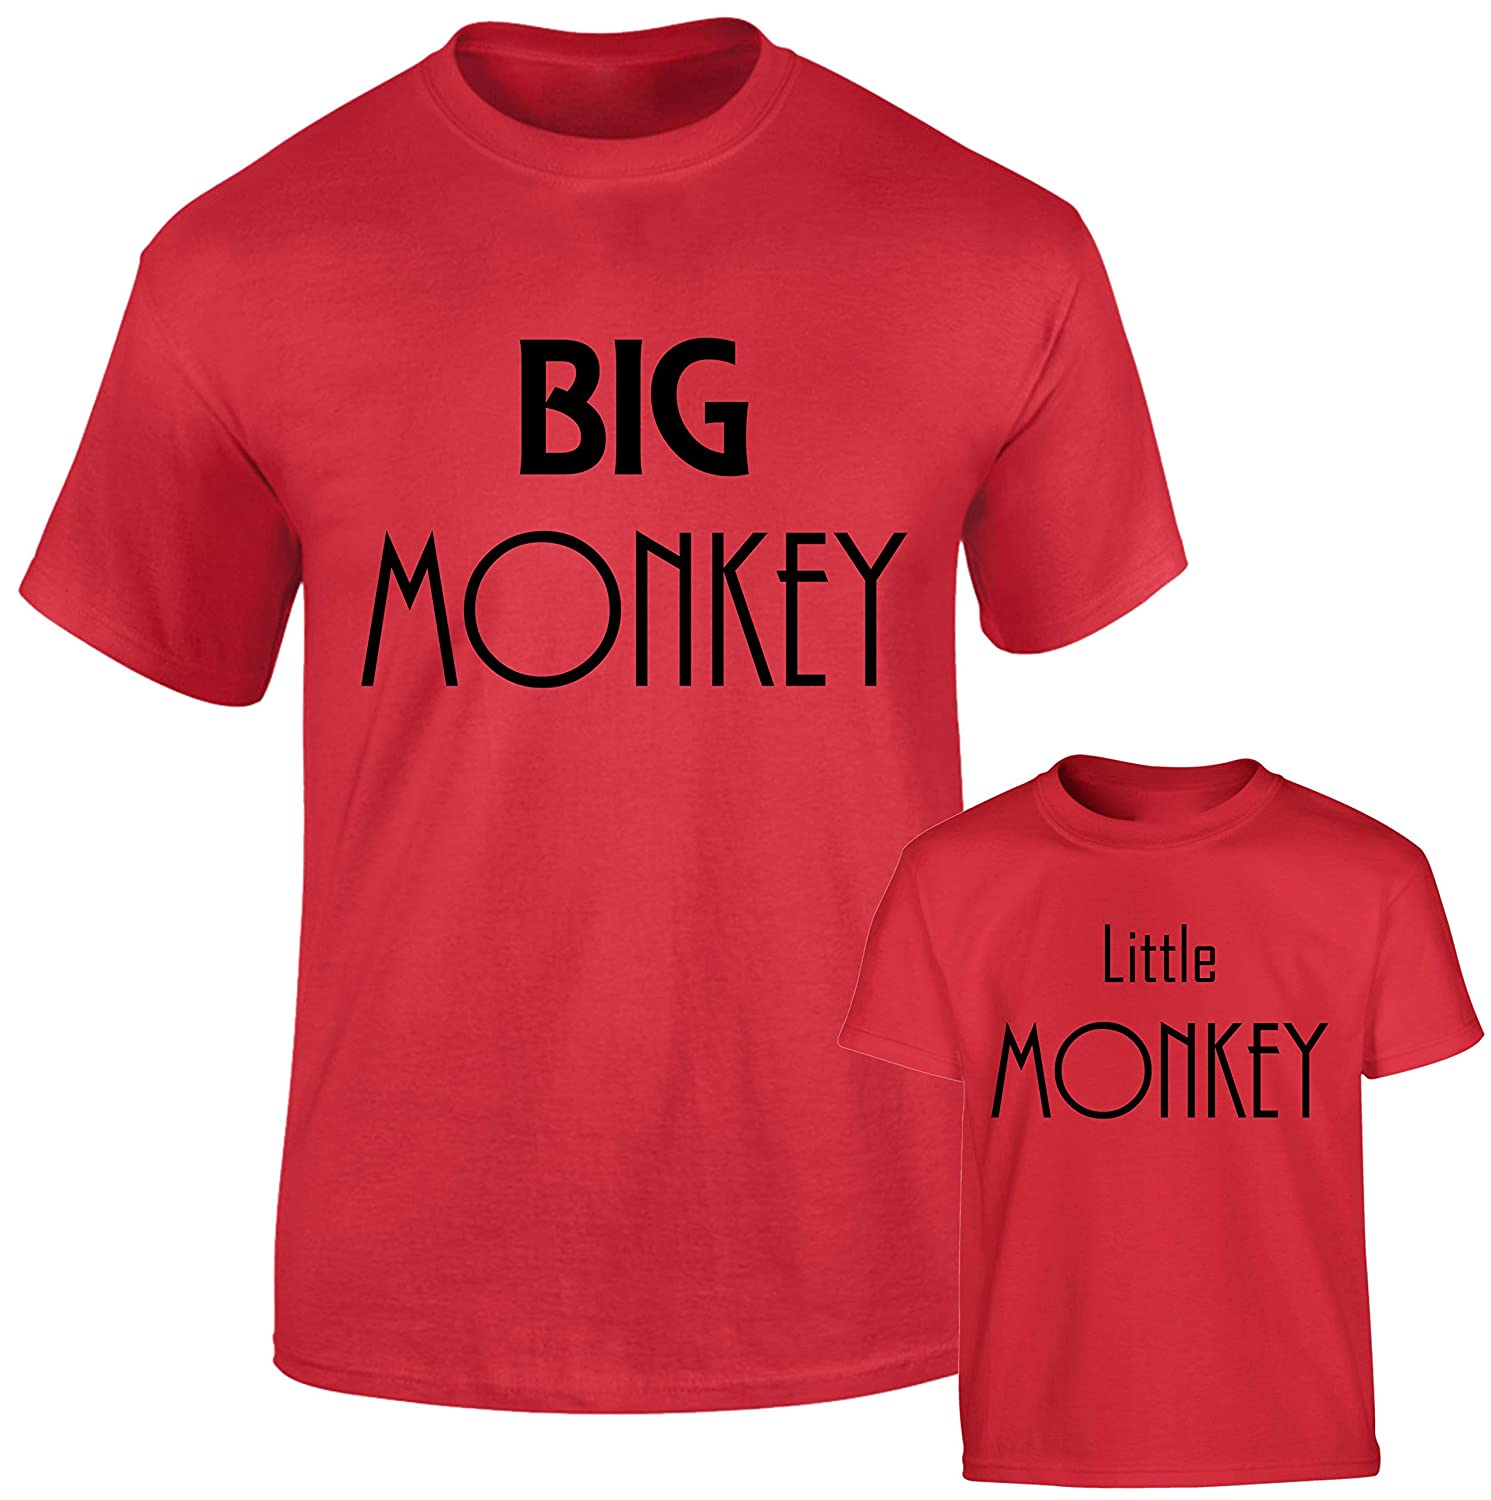 5065d64d SuperPraise Daddy Daughter Dad Son Matching T Shirts Big Monkey & Little  Monkey: Amazon.co.uk: Clothing